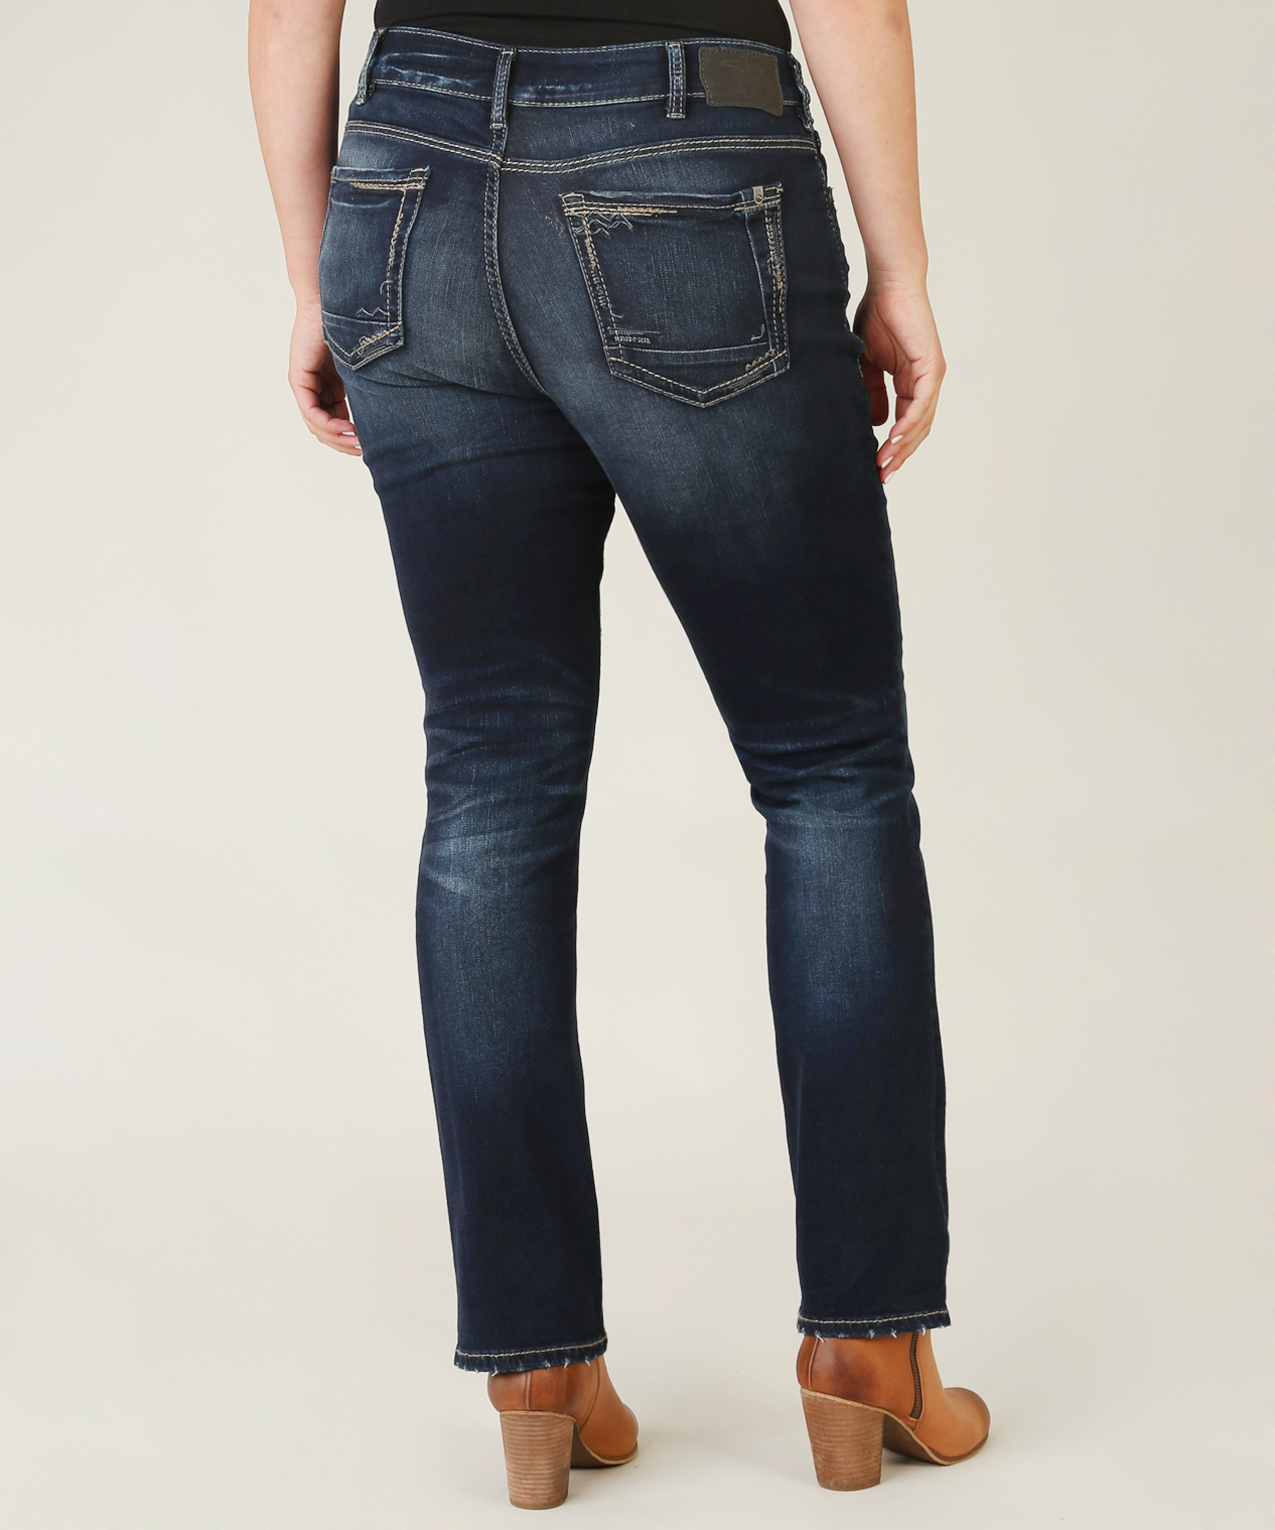 Silver Jeans Extended Sizes; Silver Jeans Extended Sizes Store. Buy Silver Jeans Extended Sizes on eBay now! Find Silver Jeans Extended Sizes for sale. Twilight Braided. Twilight Braided Area Rugs And Runners By Colonial Mills. All Sizes And Colors. $, North Ridge.